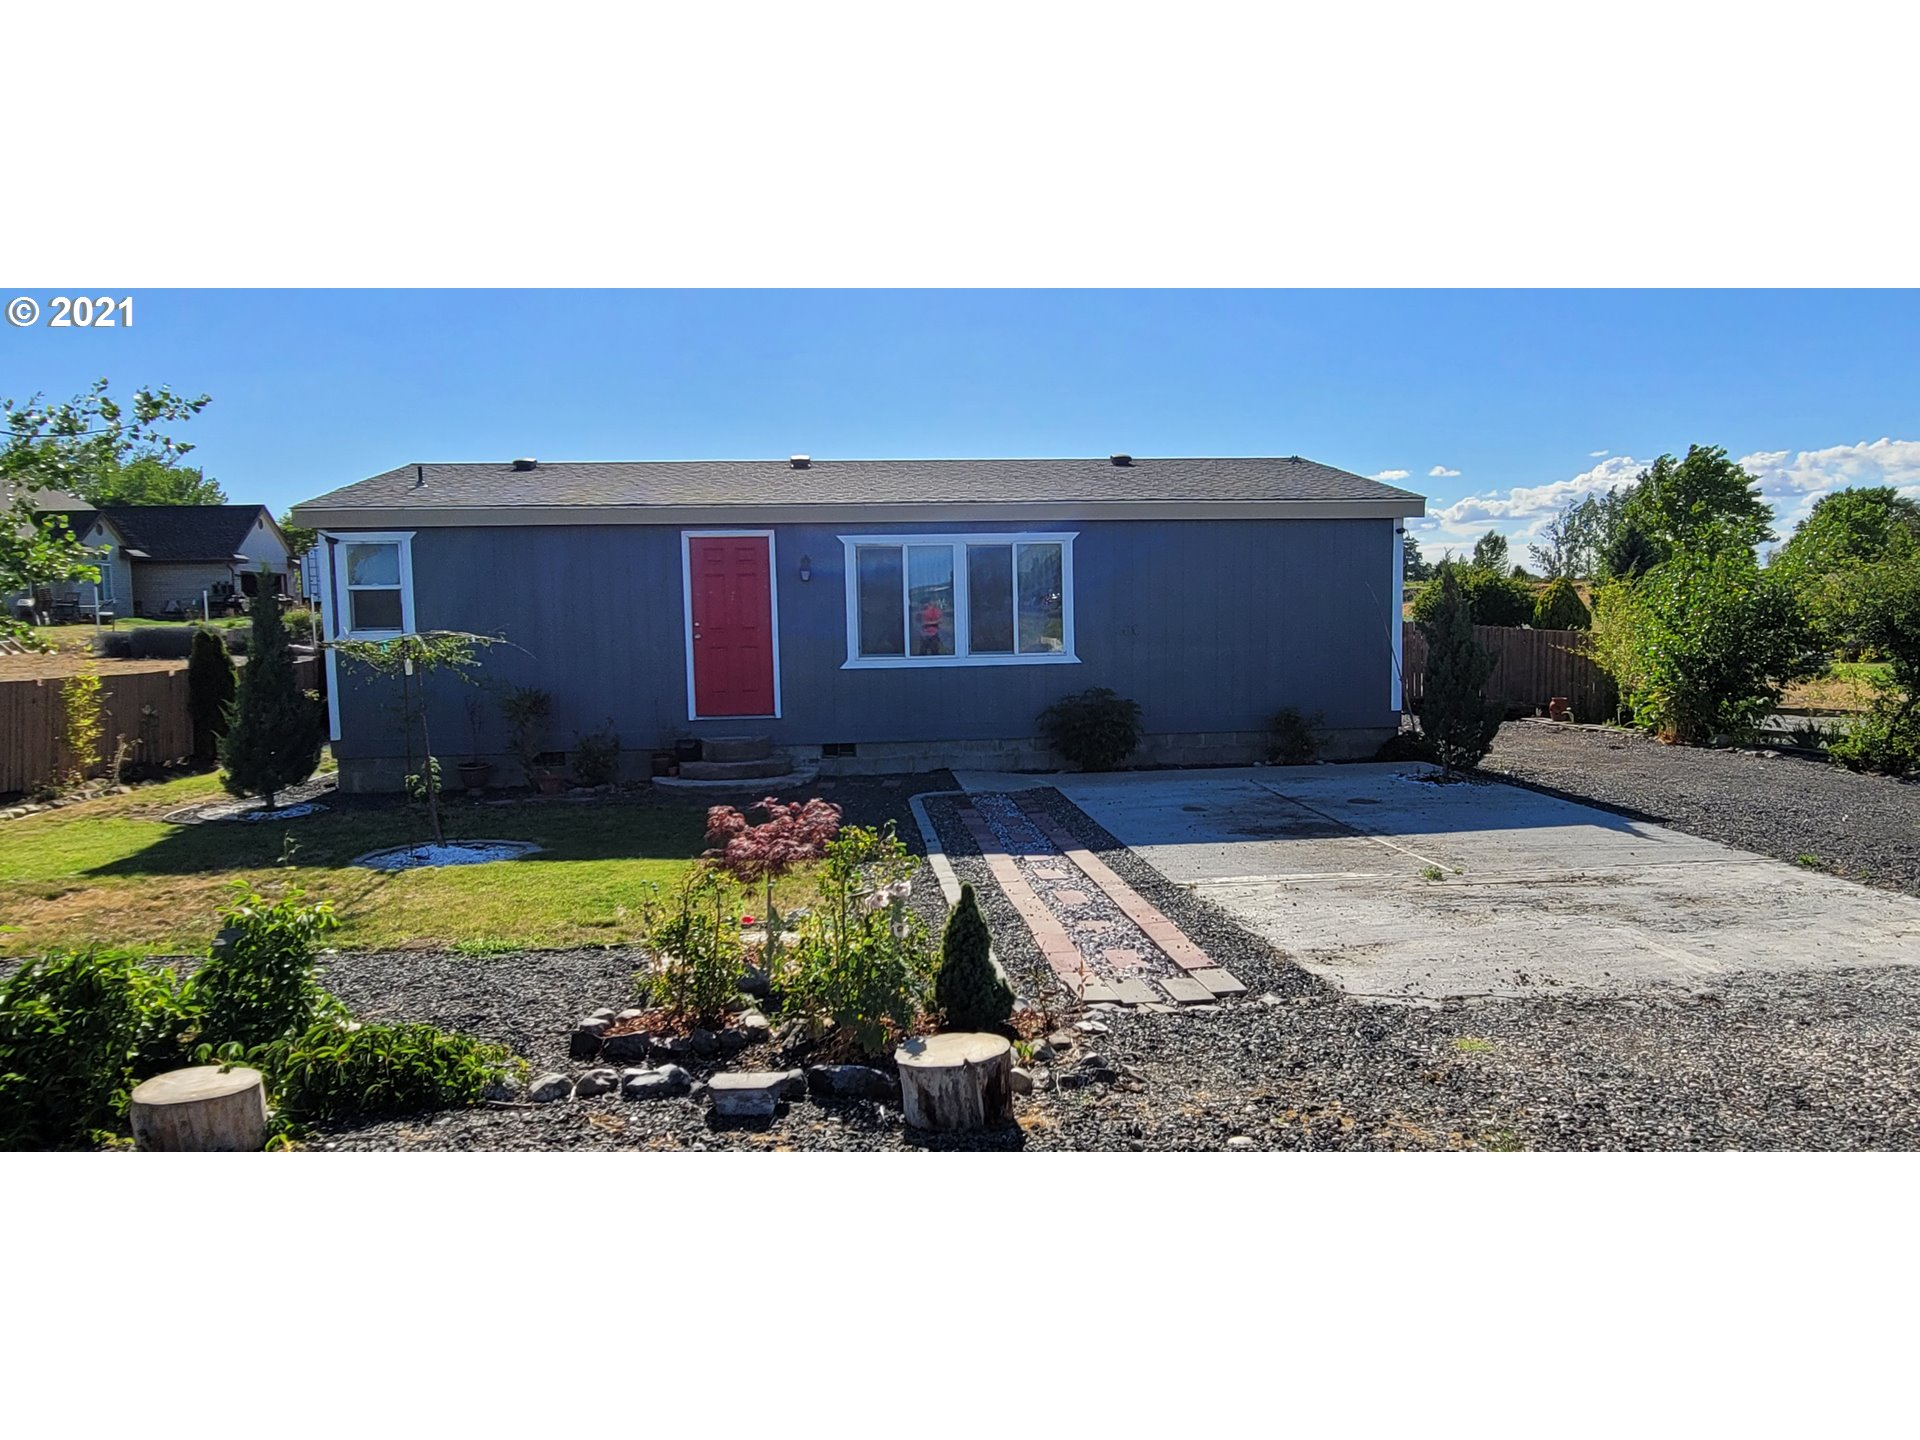 400 S FIRST ST, Irrigon OR 97844